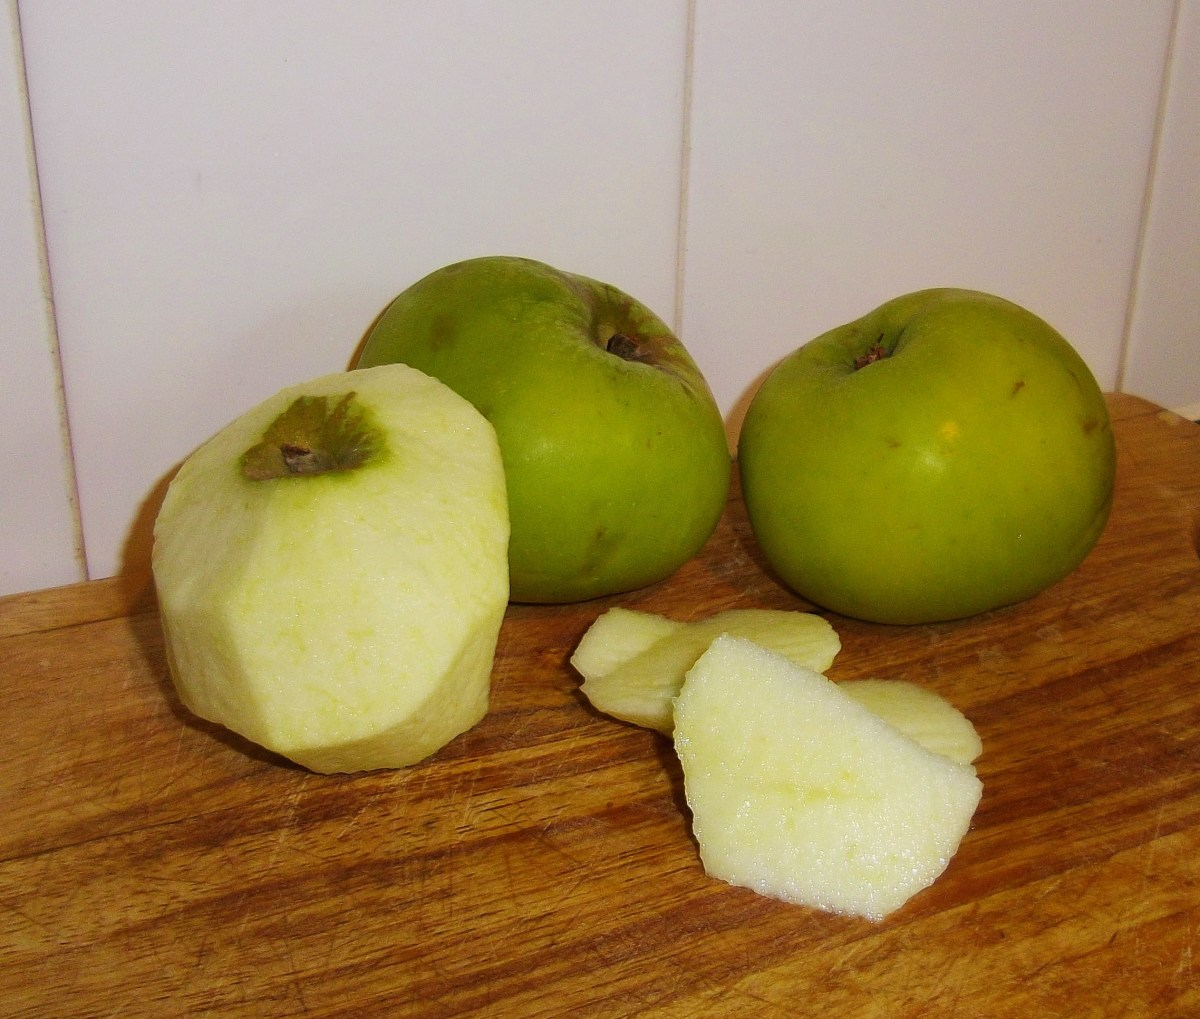 British Bramley apples are best in cooked dishes.